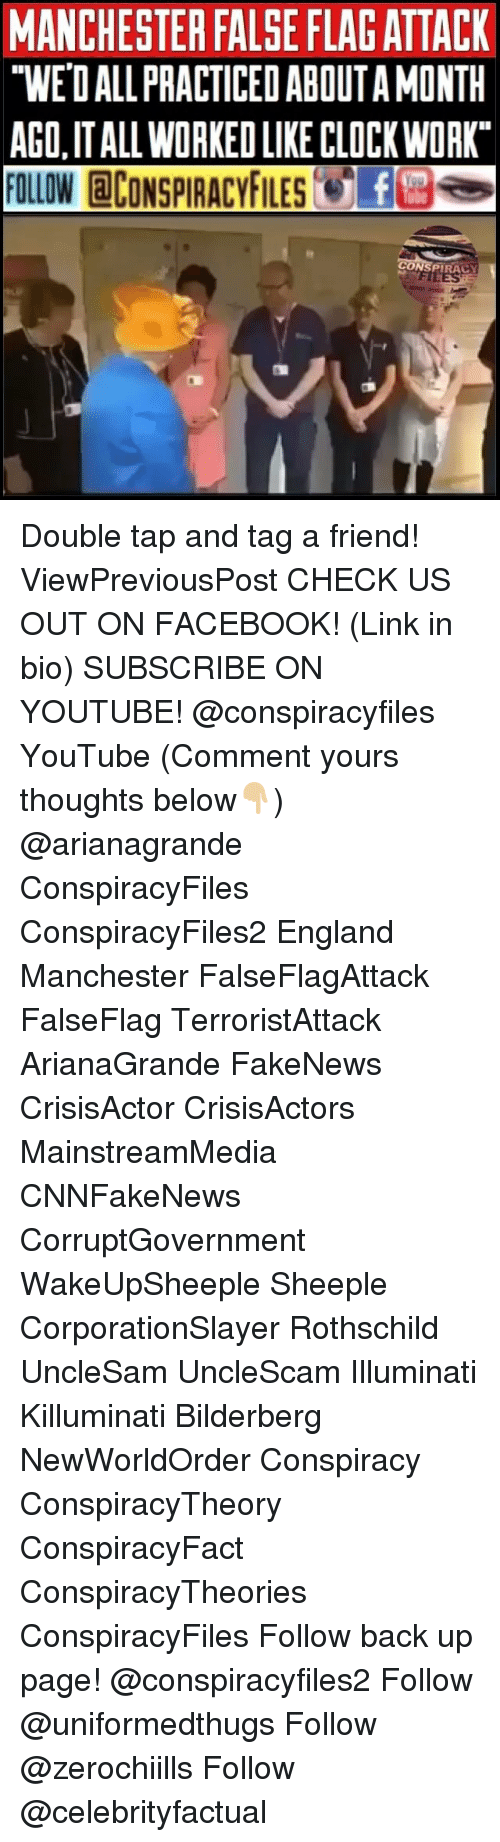 """England, Facebook, and Illuminati: MANCHESTER FALSE FLAGATTACK  """"WE'D ALL PRACTICED ABOUTA MONTH  AGO,IT ALL WORKED LIKE CLOCKWORK  FOLLOW @CONSPIRACYFILESTE塁。  ONS  PIRACY Double tap and tag a friend! ViewPreviousPost CHECK US OUT ON FACEBOOK! (Link in bio) SUBSCRIBE ON YOUTUBE! @conspiracyfiles YouTube (Comment yours thoughts below👇🏼) @arianagrande ConspiracyFiles ConspiracyFiles2 England Manchester FalseFlagAttack FalseFlag TerroristAttack ArianaGrande FakeNews CrisisActor CrisisActors MainstreamMedia CNNFakeNews CorruptGovernment WakeUpSheeple Sheeple CorporationSlayer Rothschild UncleSam UncleScam Illuminati Killuminati Bilderberg NewWorldOrder Conspiracy ConspiracyTheory ConspiracyFact ConspiracyTheories ConspiracyFiles Follow back up page! @conspiracyfiles2 Follow @uniformedthugs Follow @zerochiills Follow @celebrityfactual"""